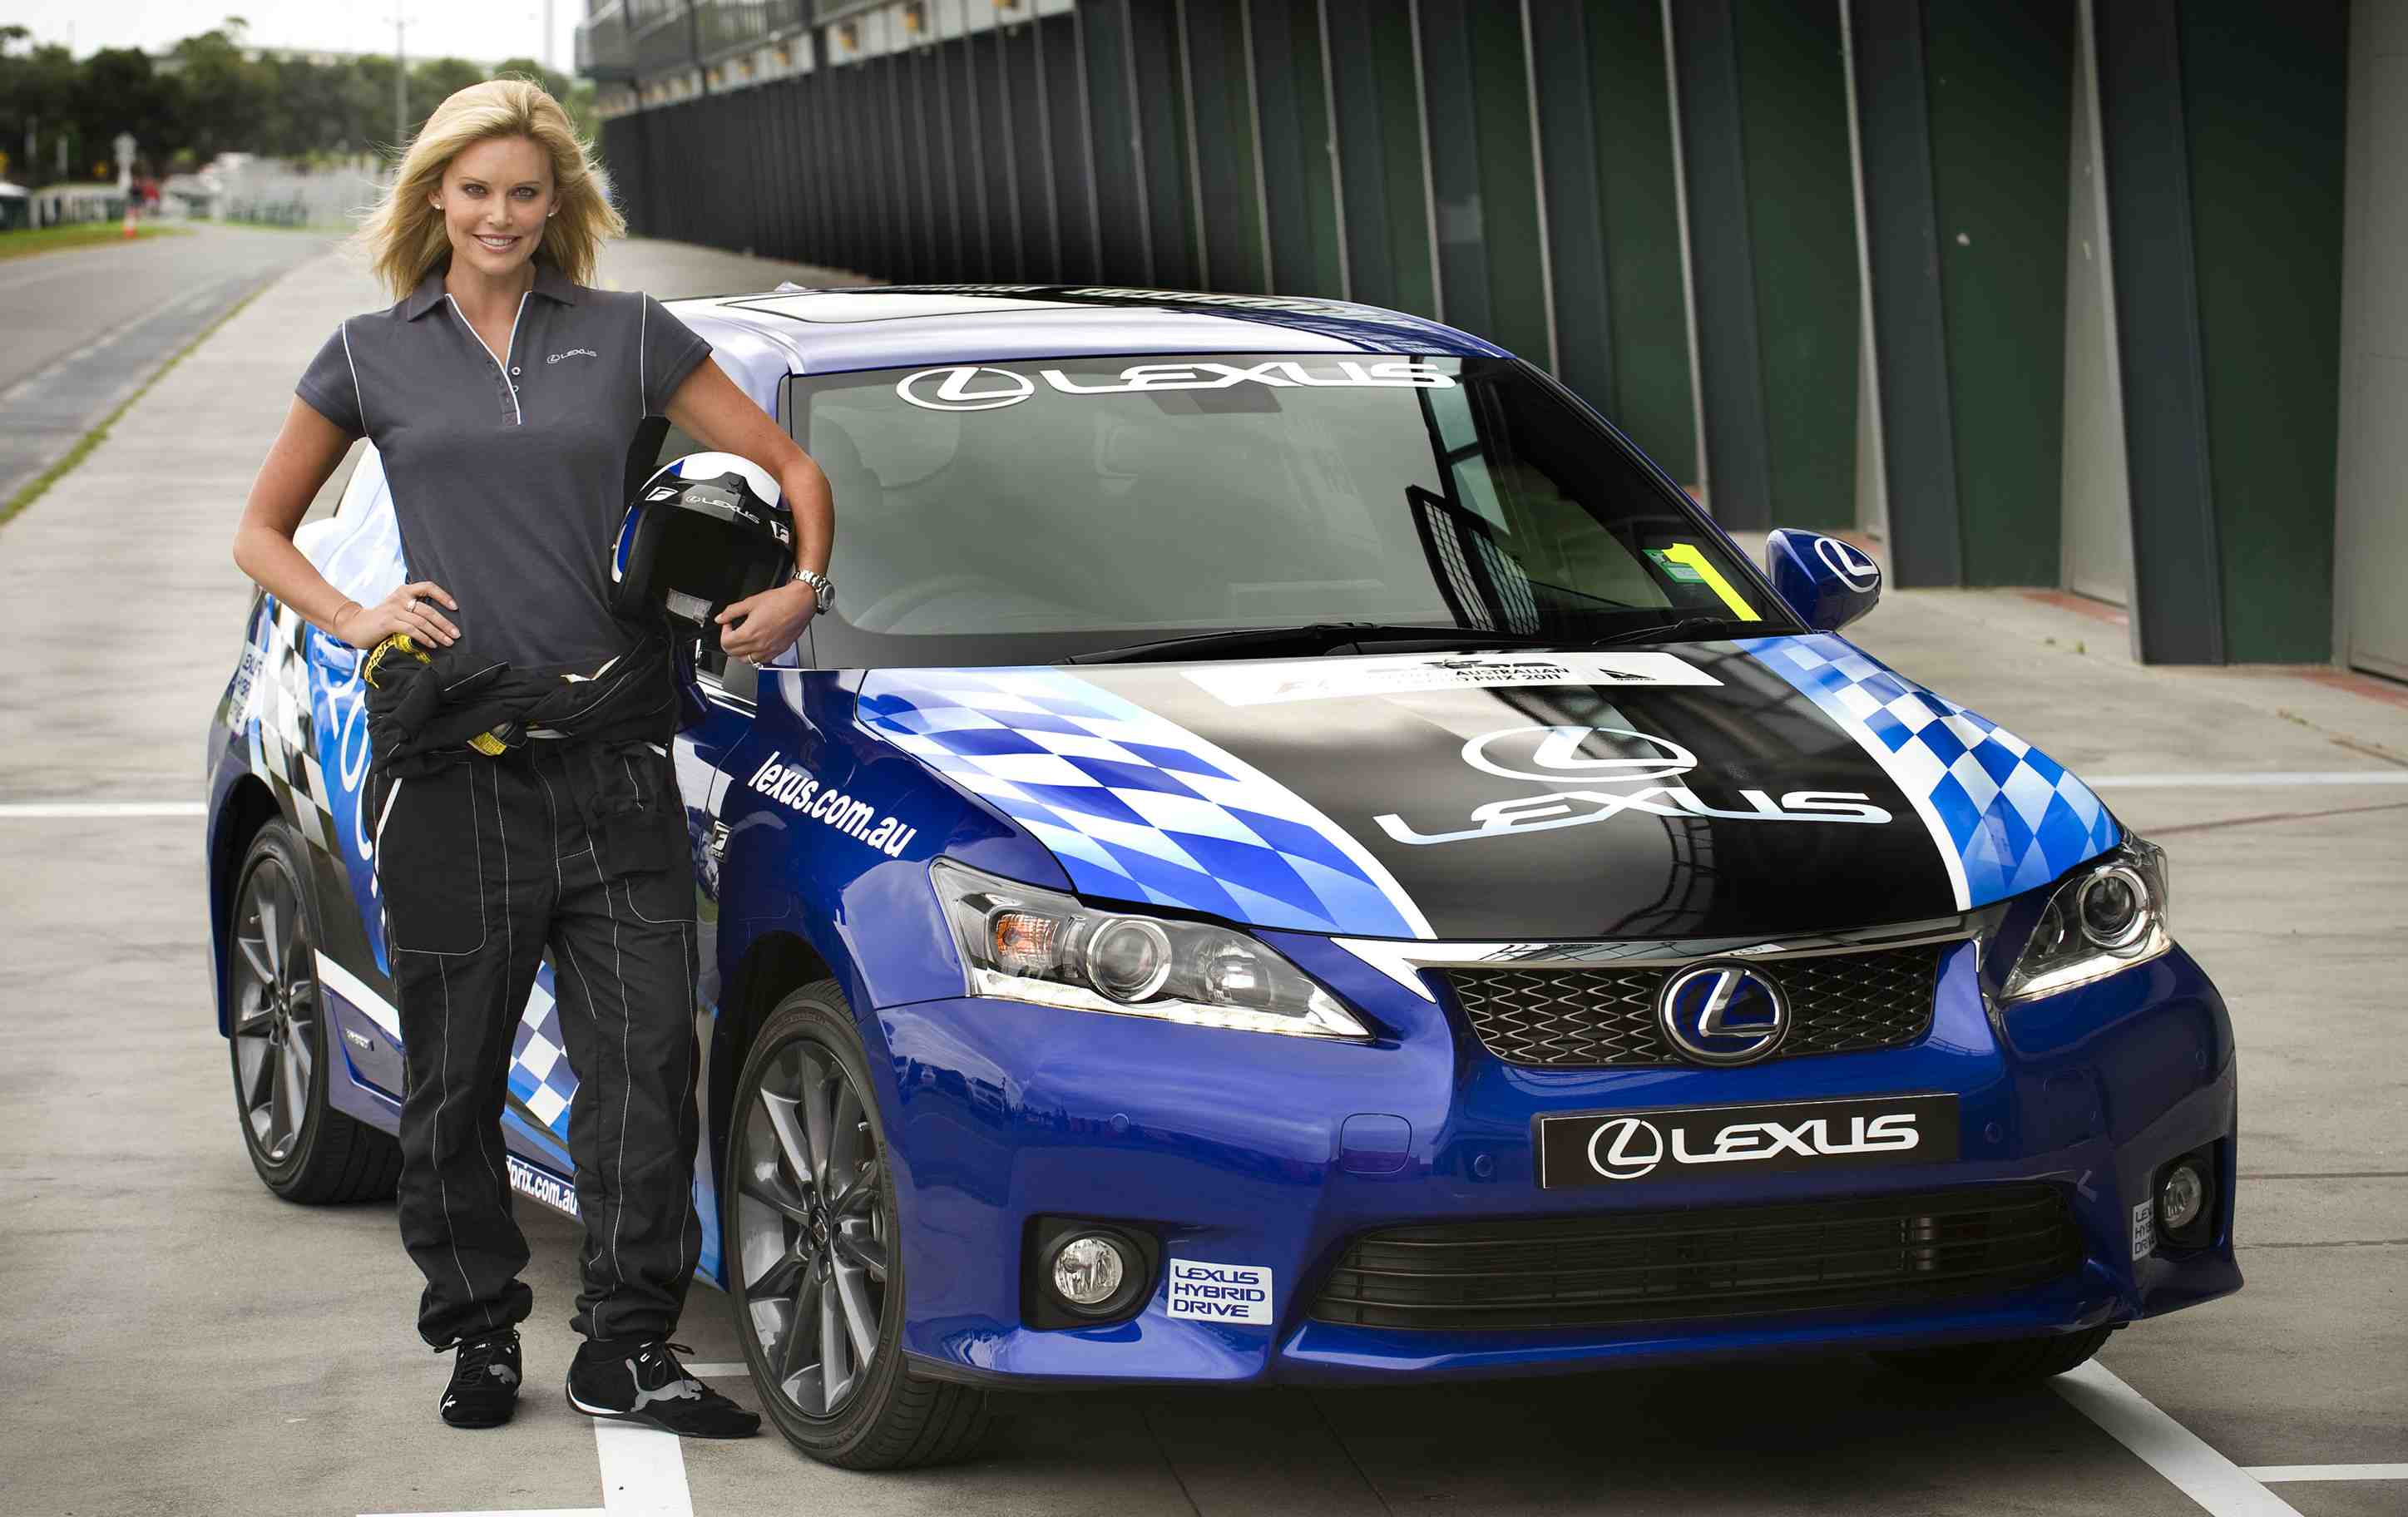 Celebrity race returns to AGP with Lexus hybrid